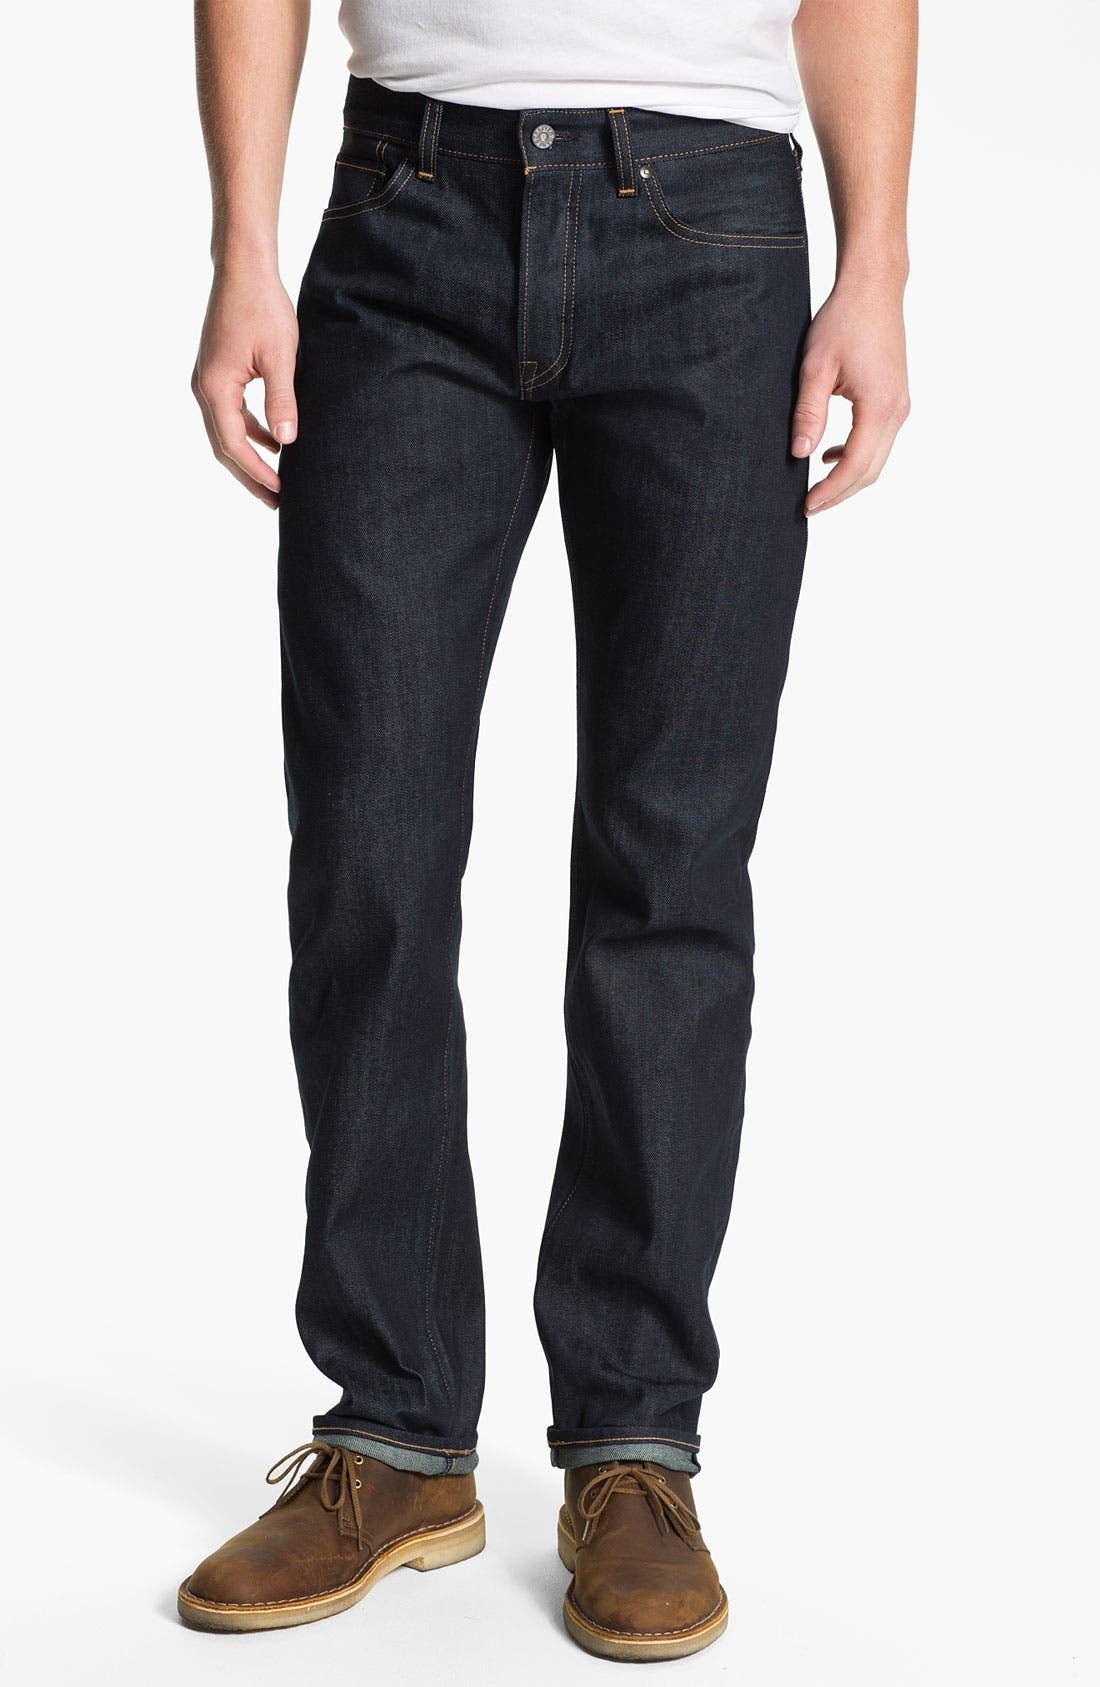 Alternate Image 1 Selected - Levi's® Made & Crafted™ 'Ruler' Straight Leg Jeans (Indigo Rigid)